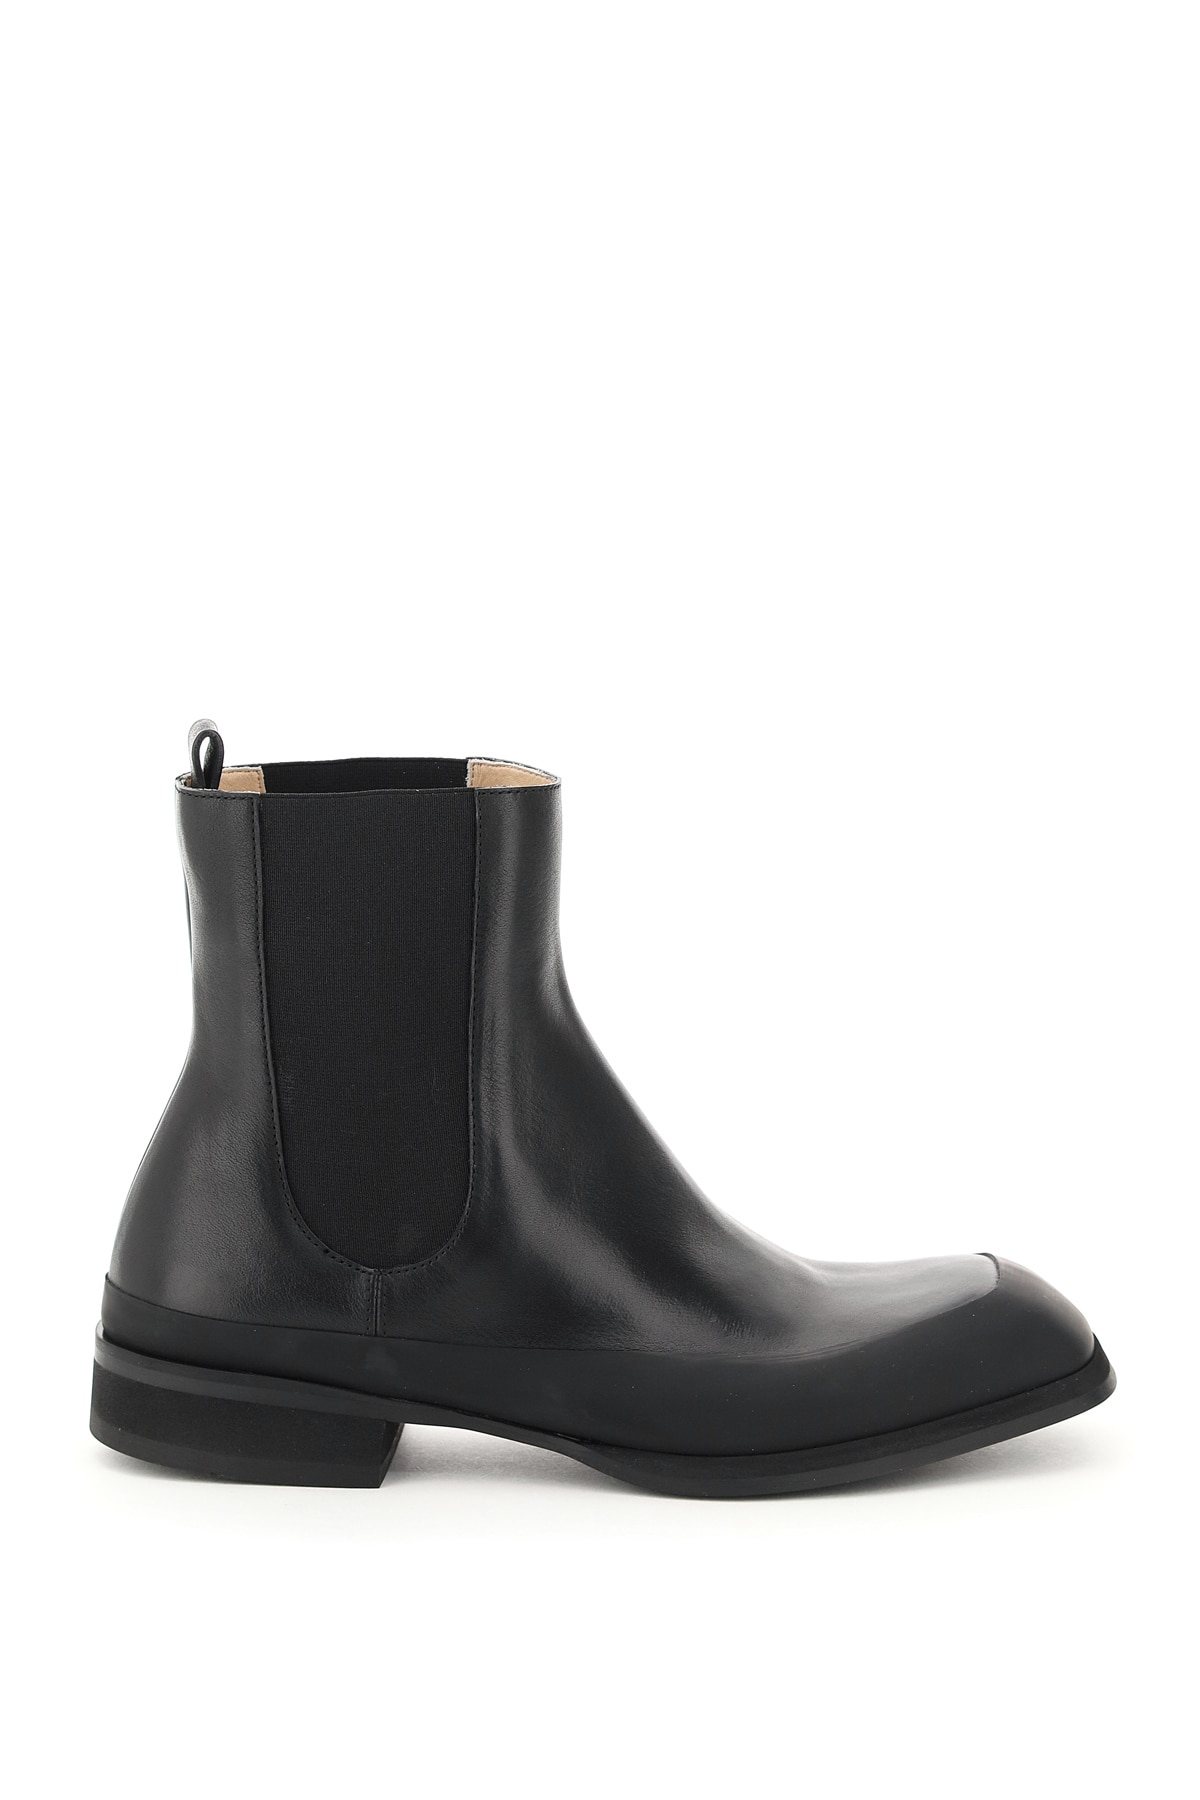 THE ROW GARDEN LEATHER BOOTS 39 Black Leather